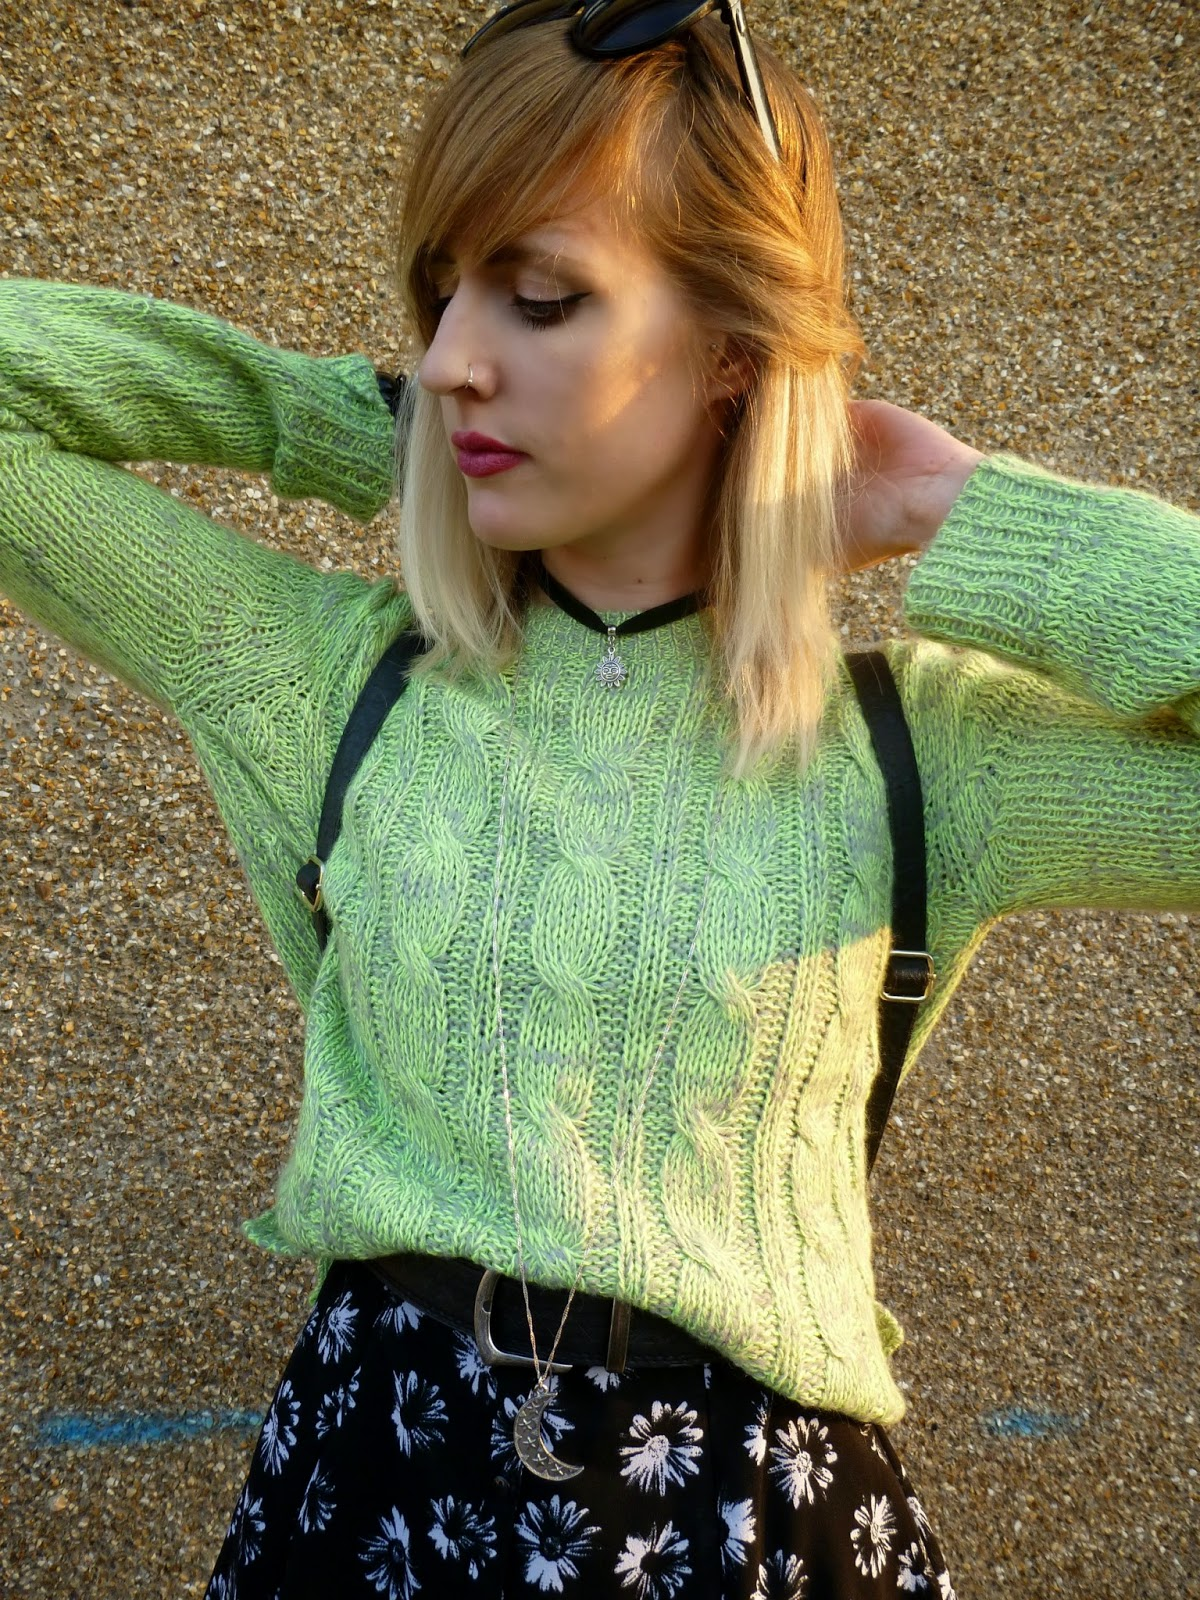 Robots Eating Roses, Vintage Lime Green Jumper